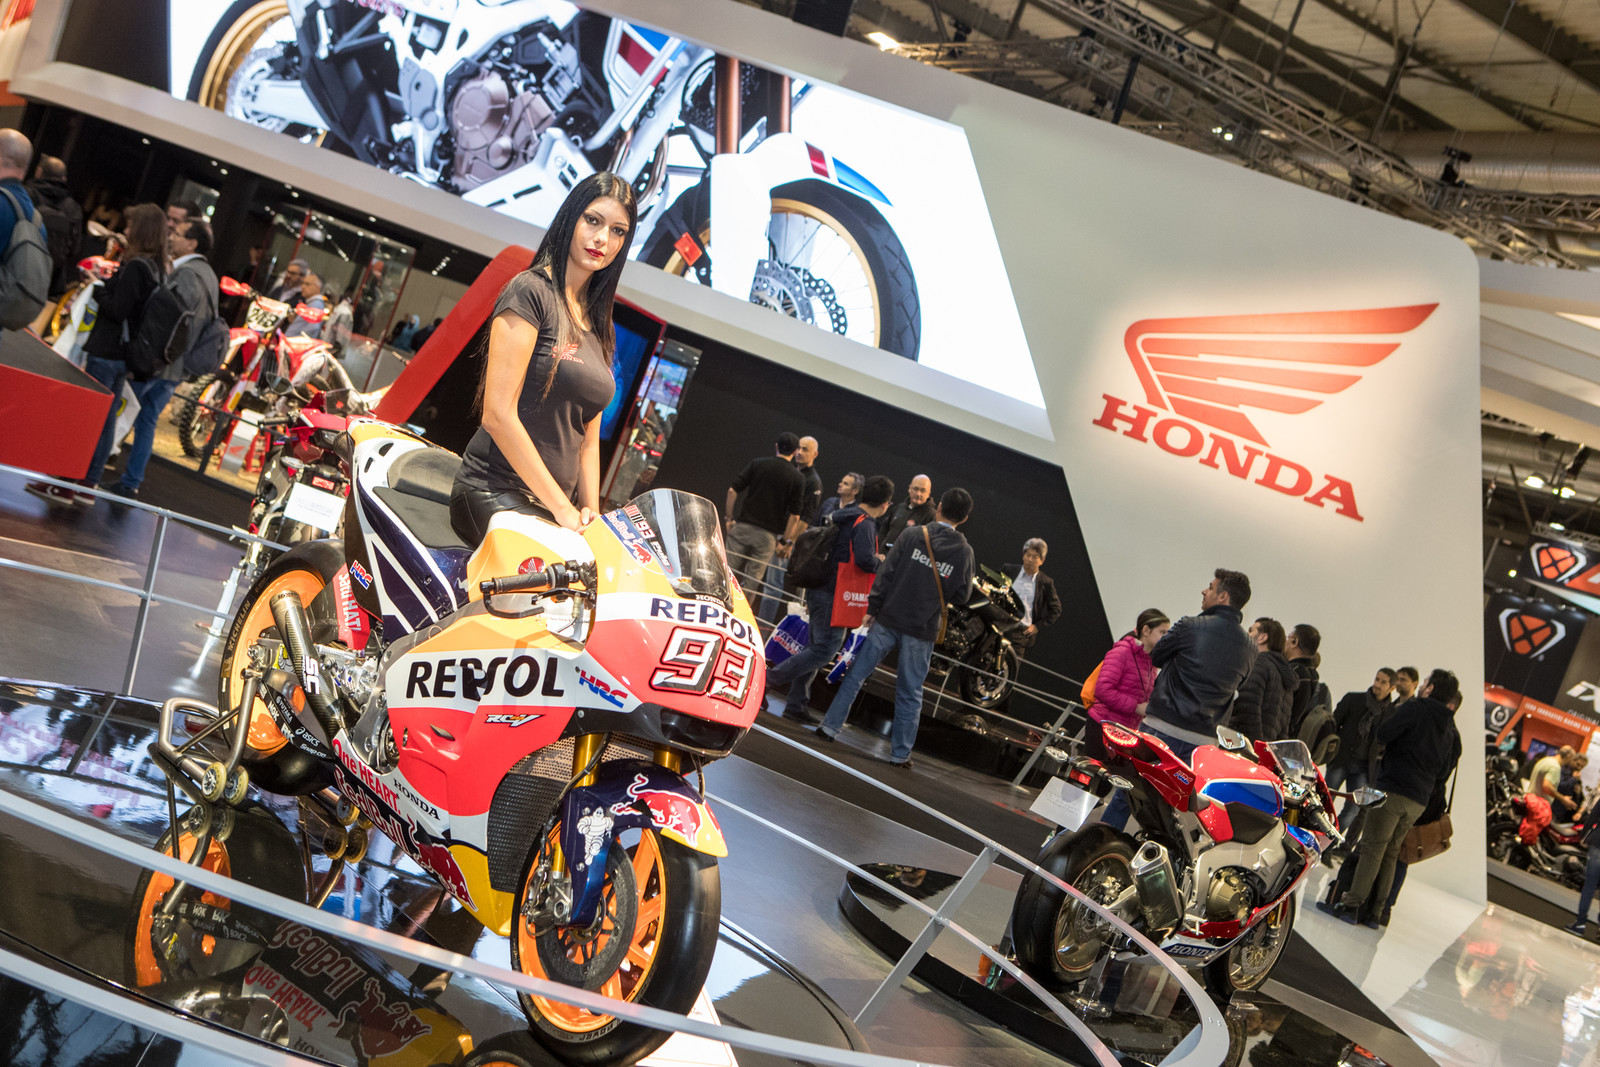 Honda at EICMA - 2017 EICMA - Milan Motorcycle Show: Chapter Two - Motocross Pictures - Vital MX